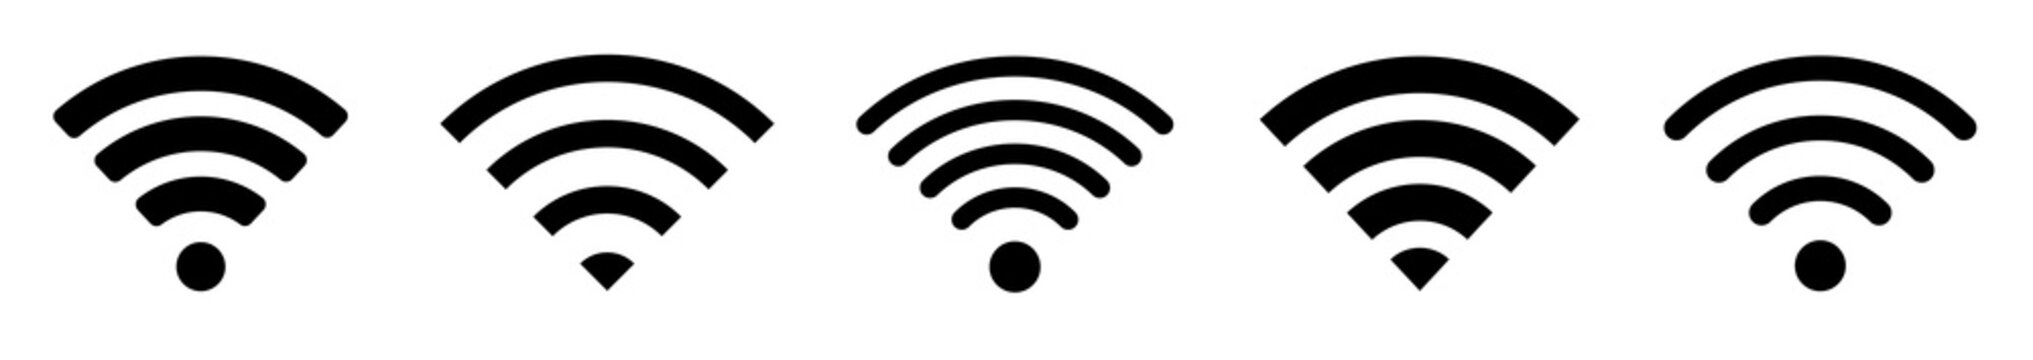 Wi-Fi Icon set symbol. Wireless and wifi icon or wi-fi icon sign for remote internet access. Network wifi business concept. Vector illustration.